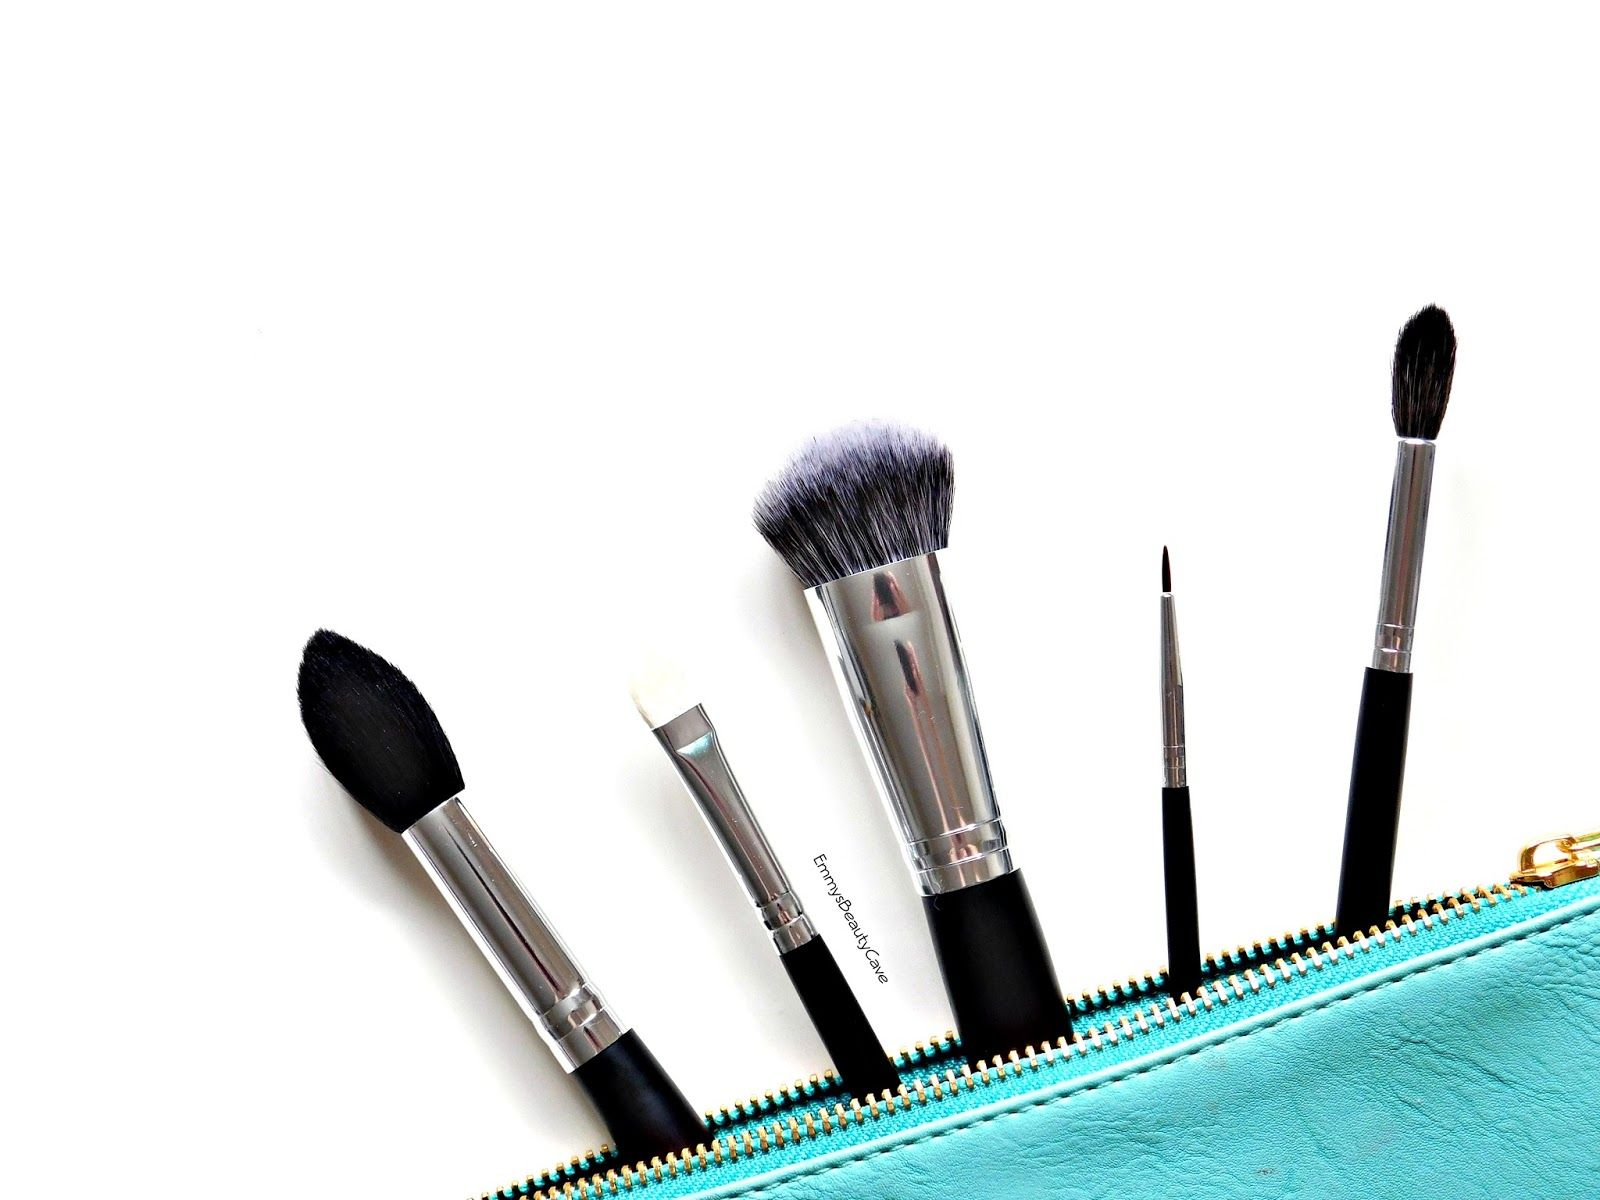 New Release Crown Brush Pro Brushes Review* Crown, Beauty